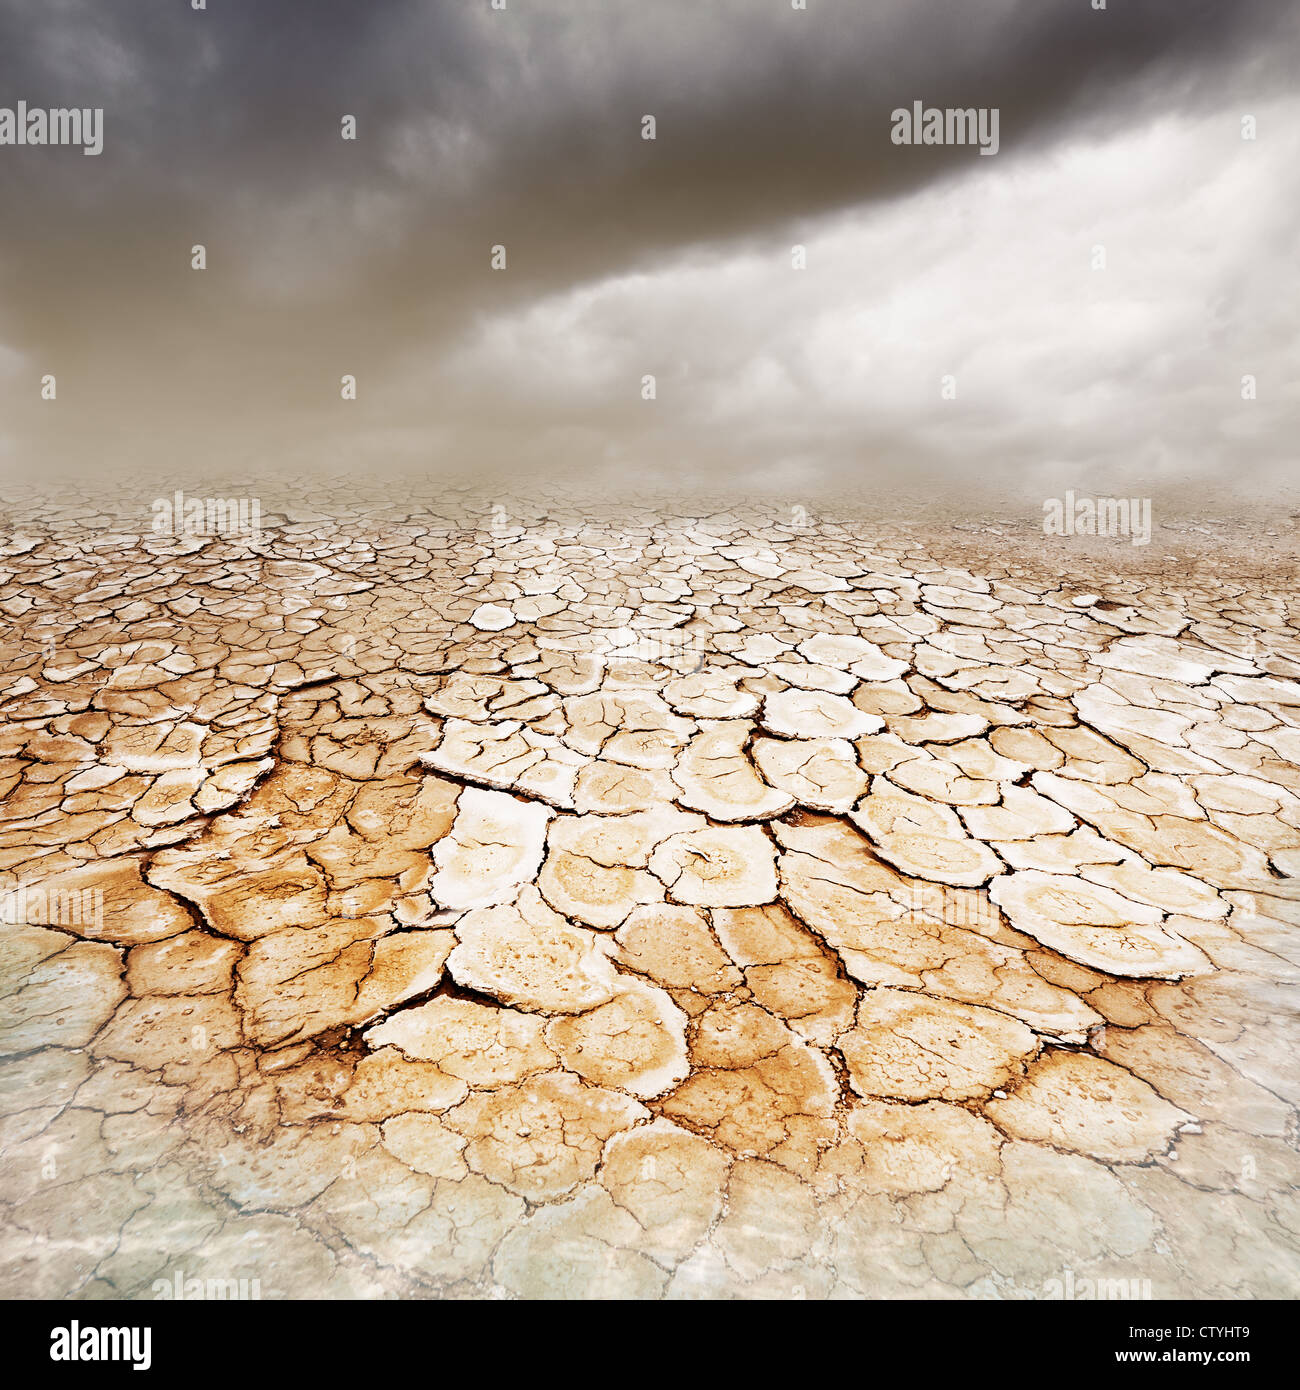 Dry, parched cracked earth with stormy dusty sky and foreground water - Stock Image